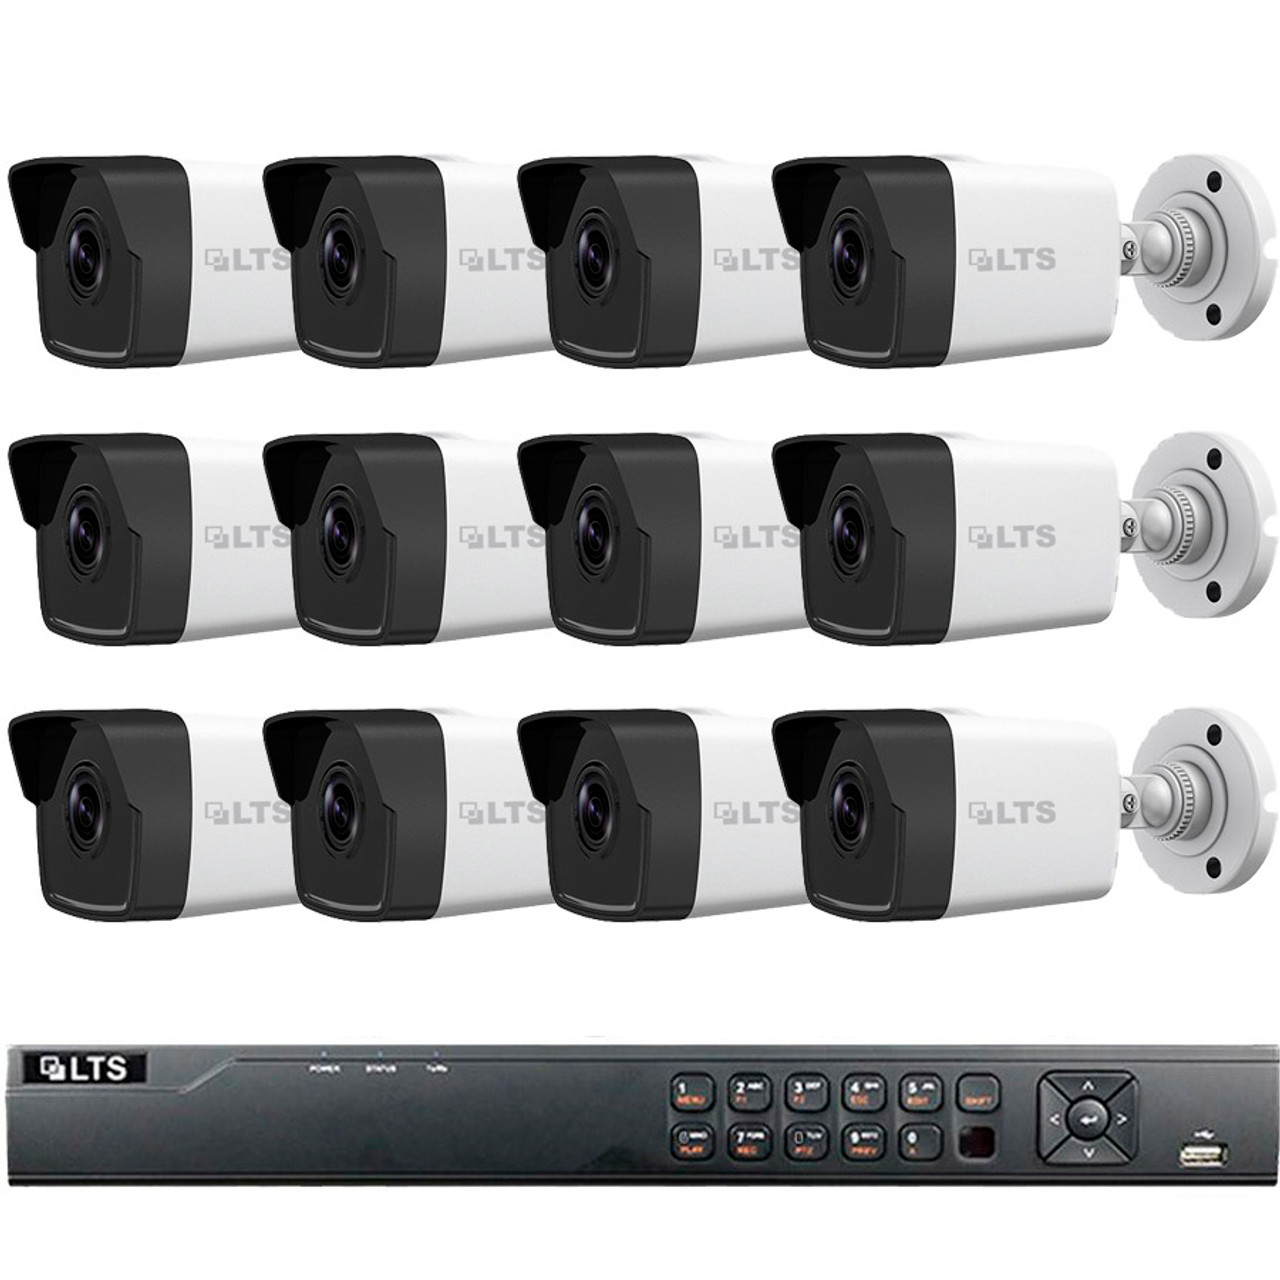 12-Camera Bullet IP Security Camera System 1080p 2MP - 100ft  Night  Visibility, Plug and Play Setup, True WDR, 3TB Video Storage, LTN8712-B2W